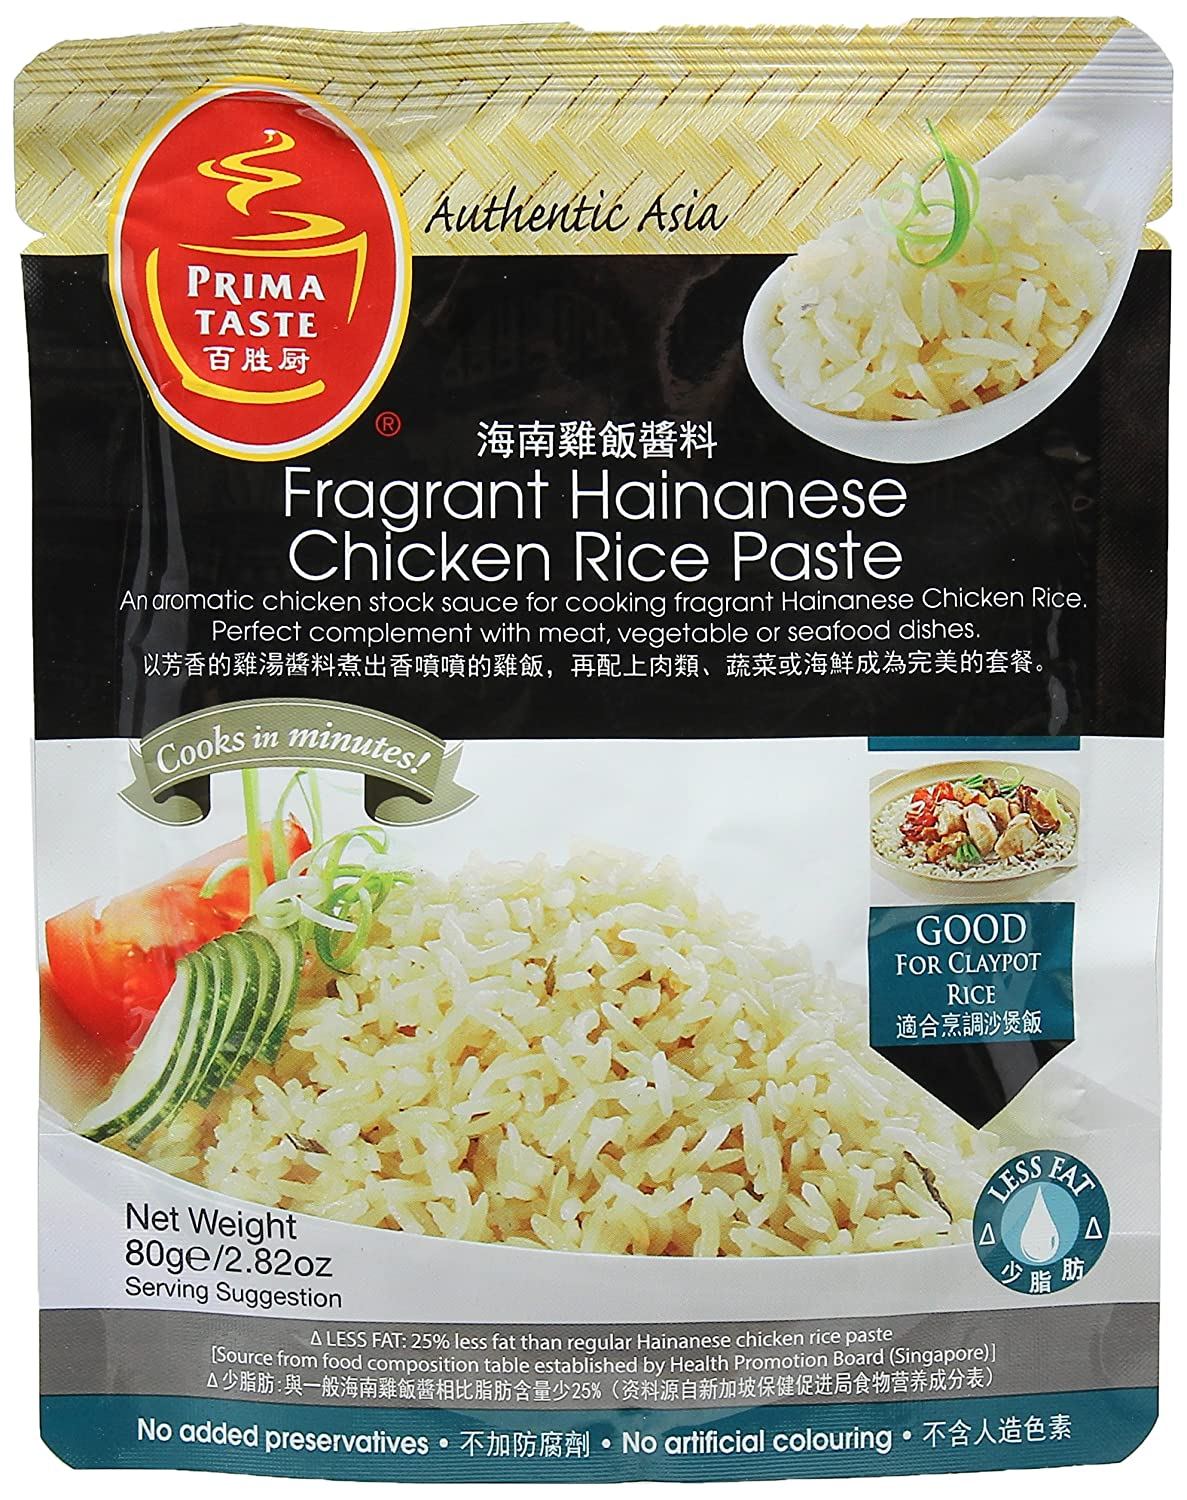 Prima Taste Fragrant Hainanese Chicken Rice Paste Amazon Co Uk Grocery